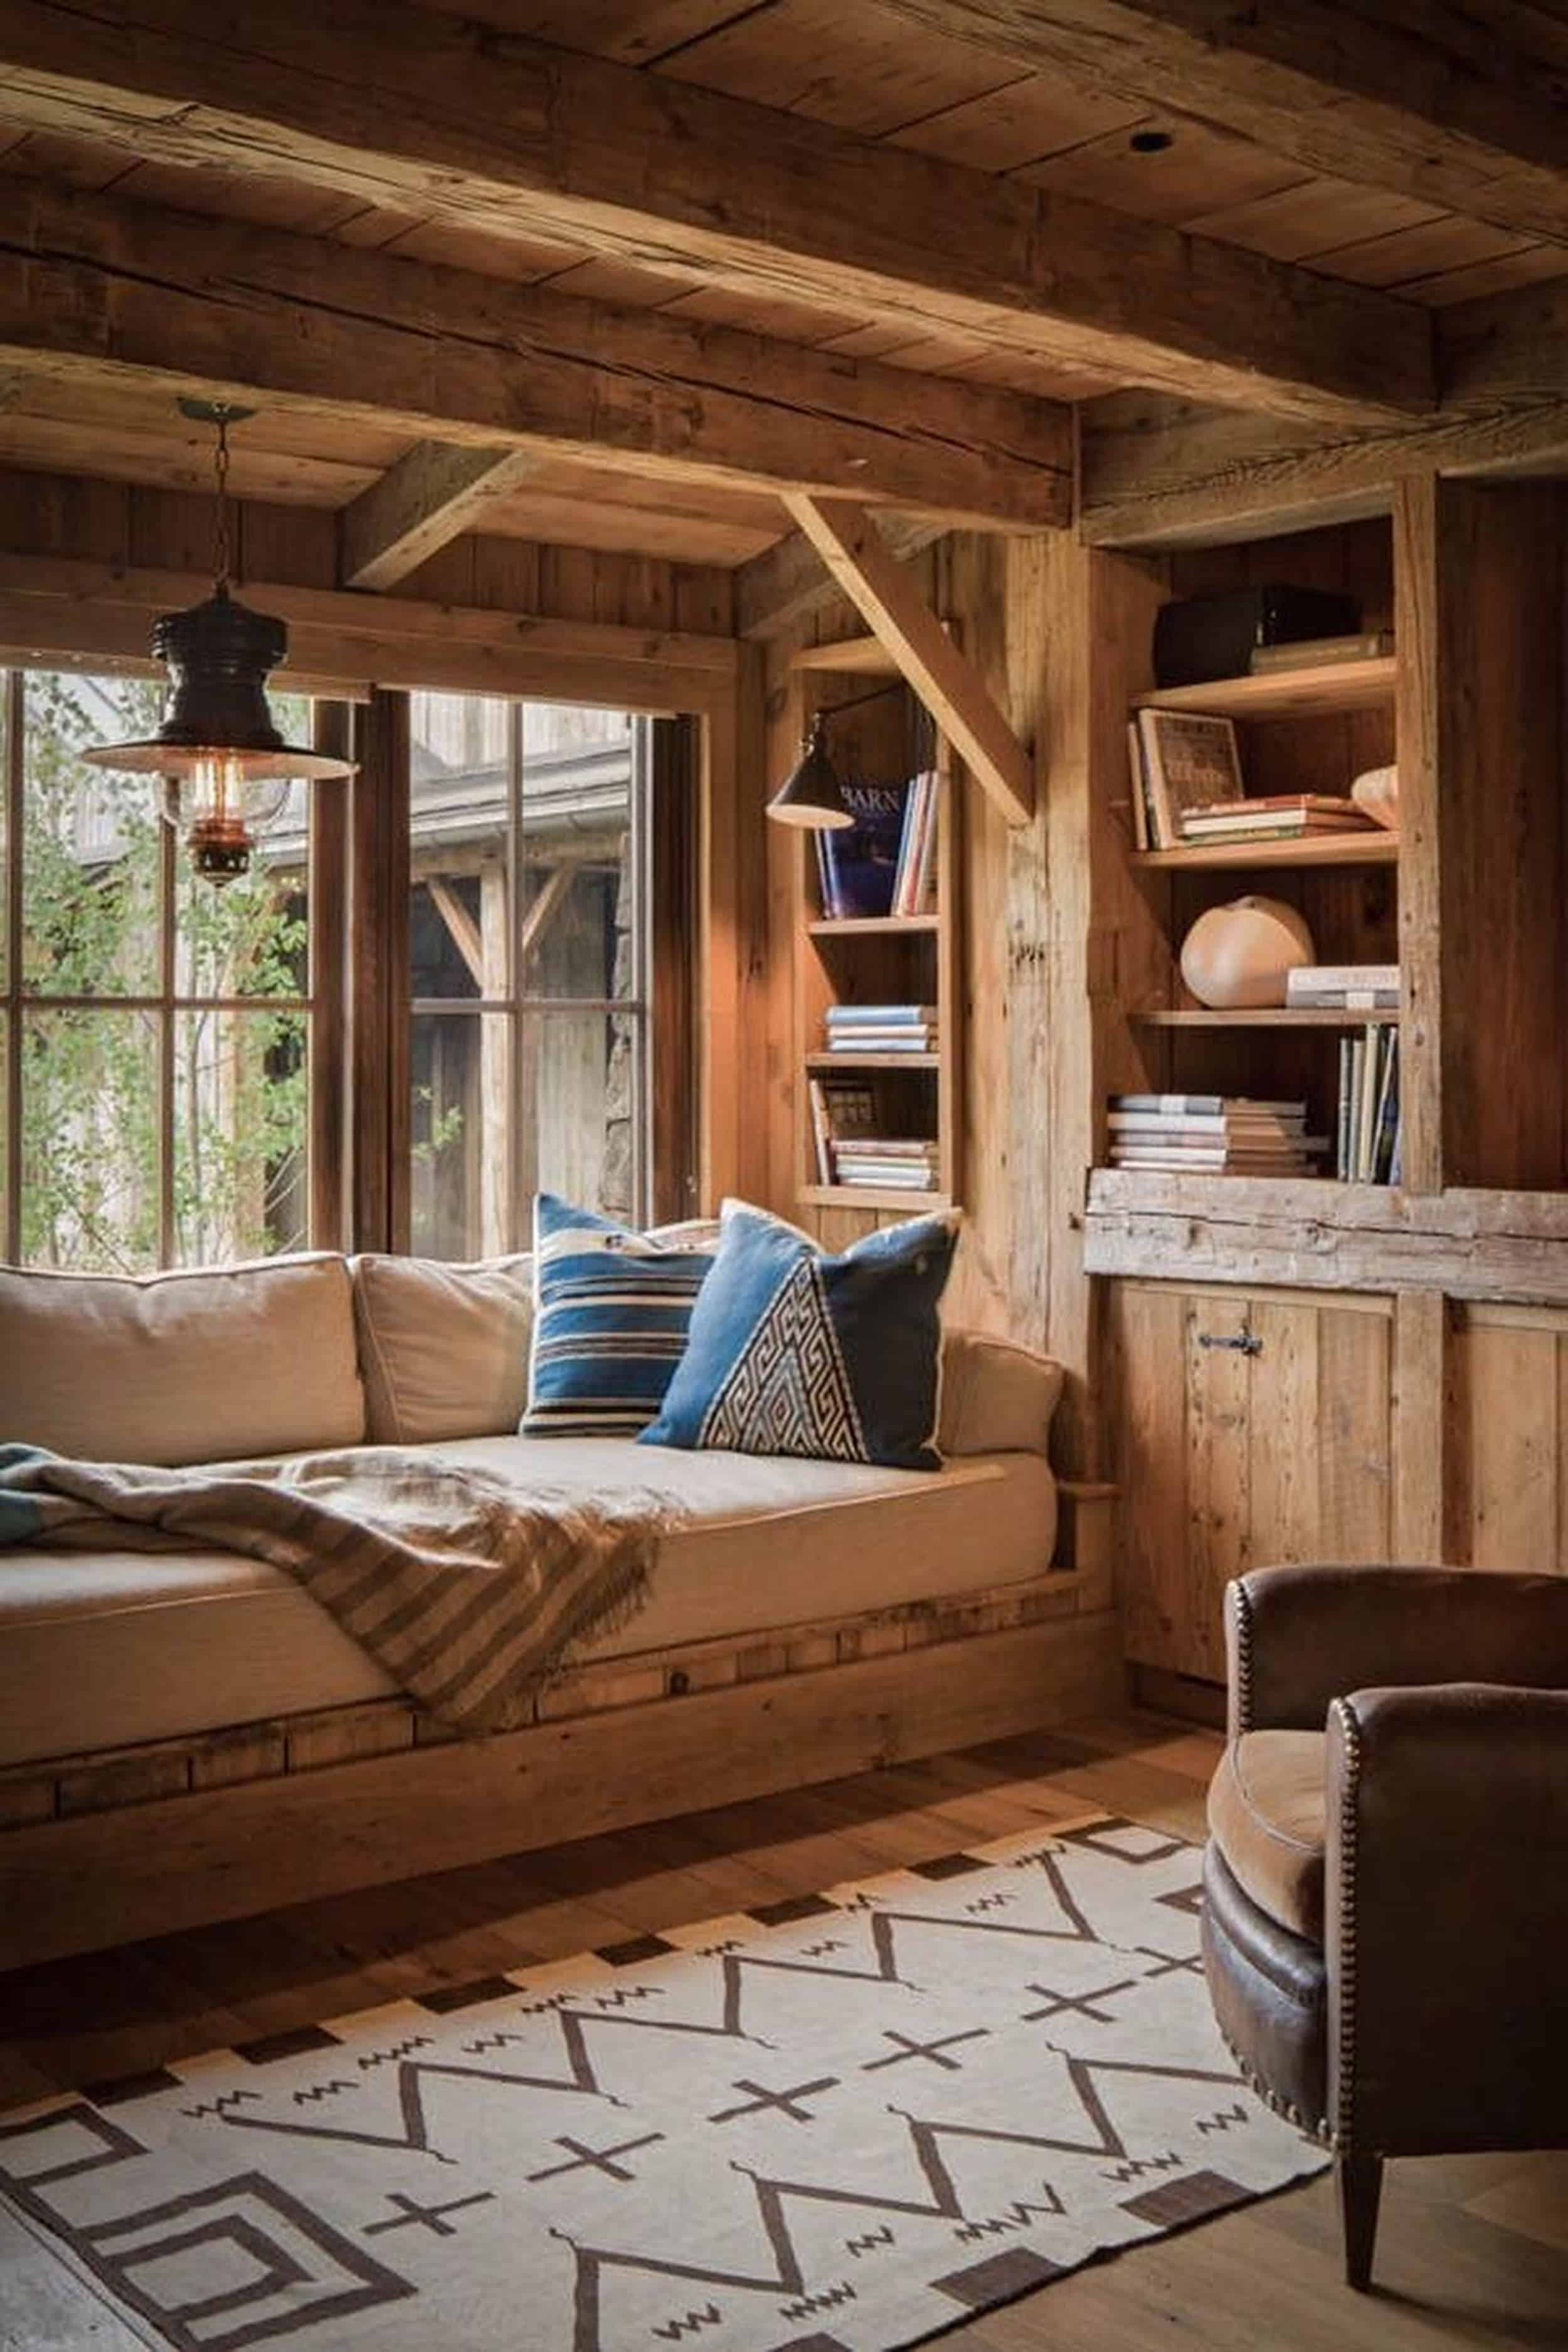 Emily Henderson Mountain Fixer Upper I Design You Decide 5 Styles Rustic Cabin 04